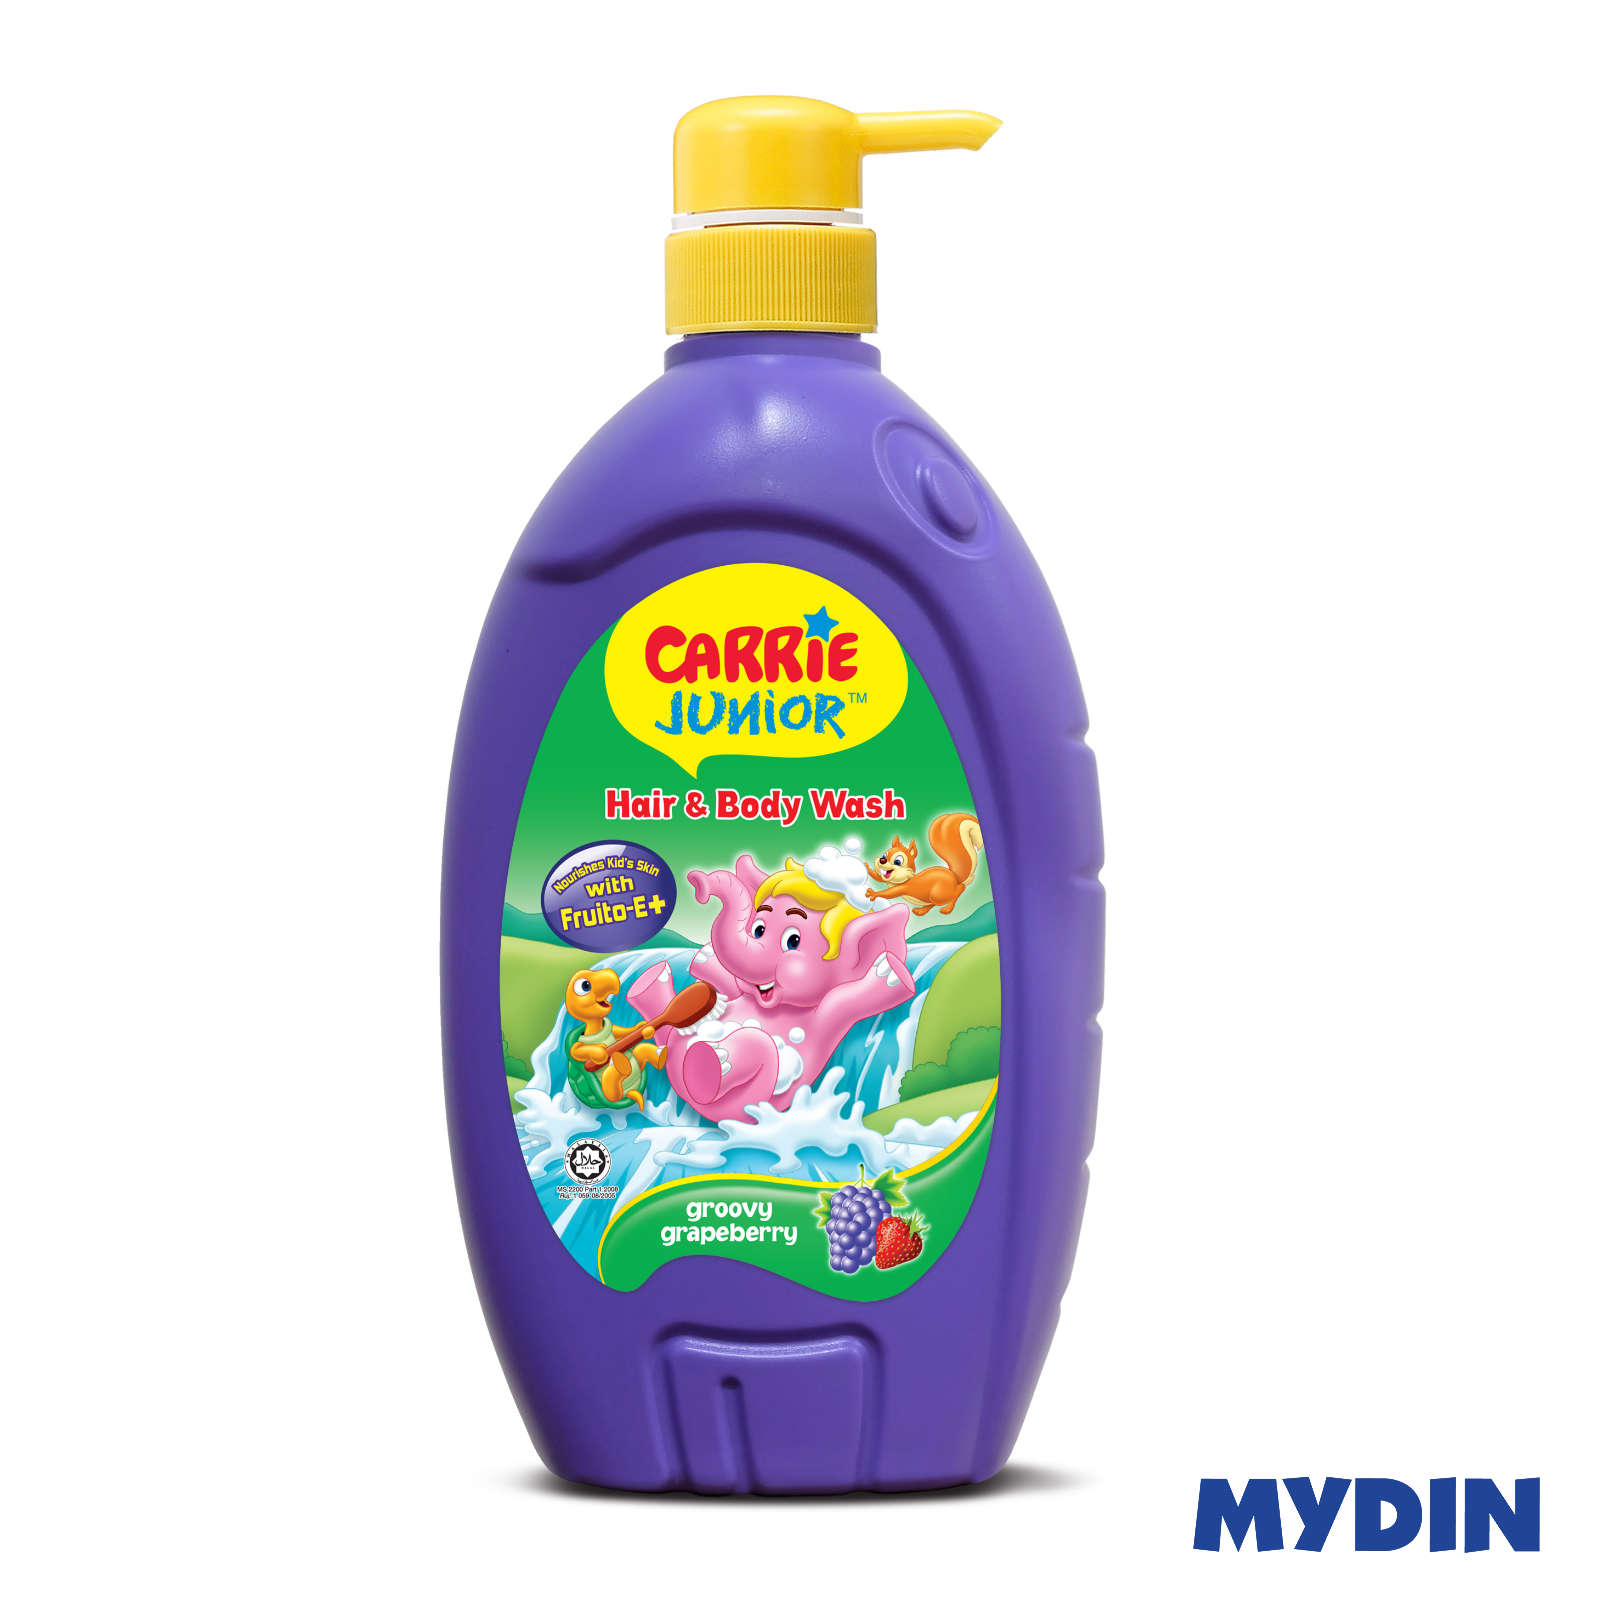 Carrie Junior Baby Hair & Body Wash - Groovy Grapeberry (700ml)